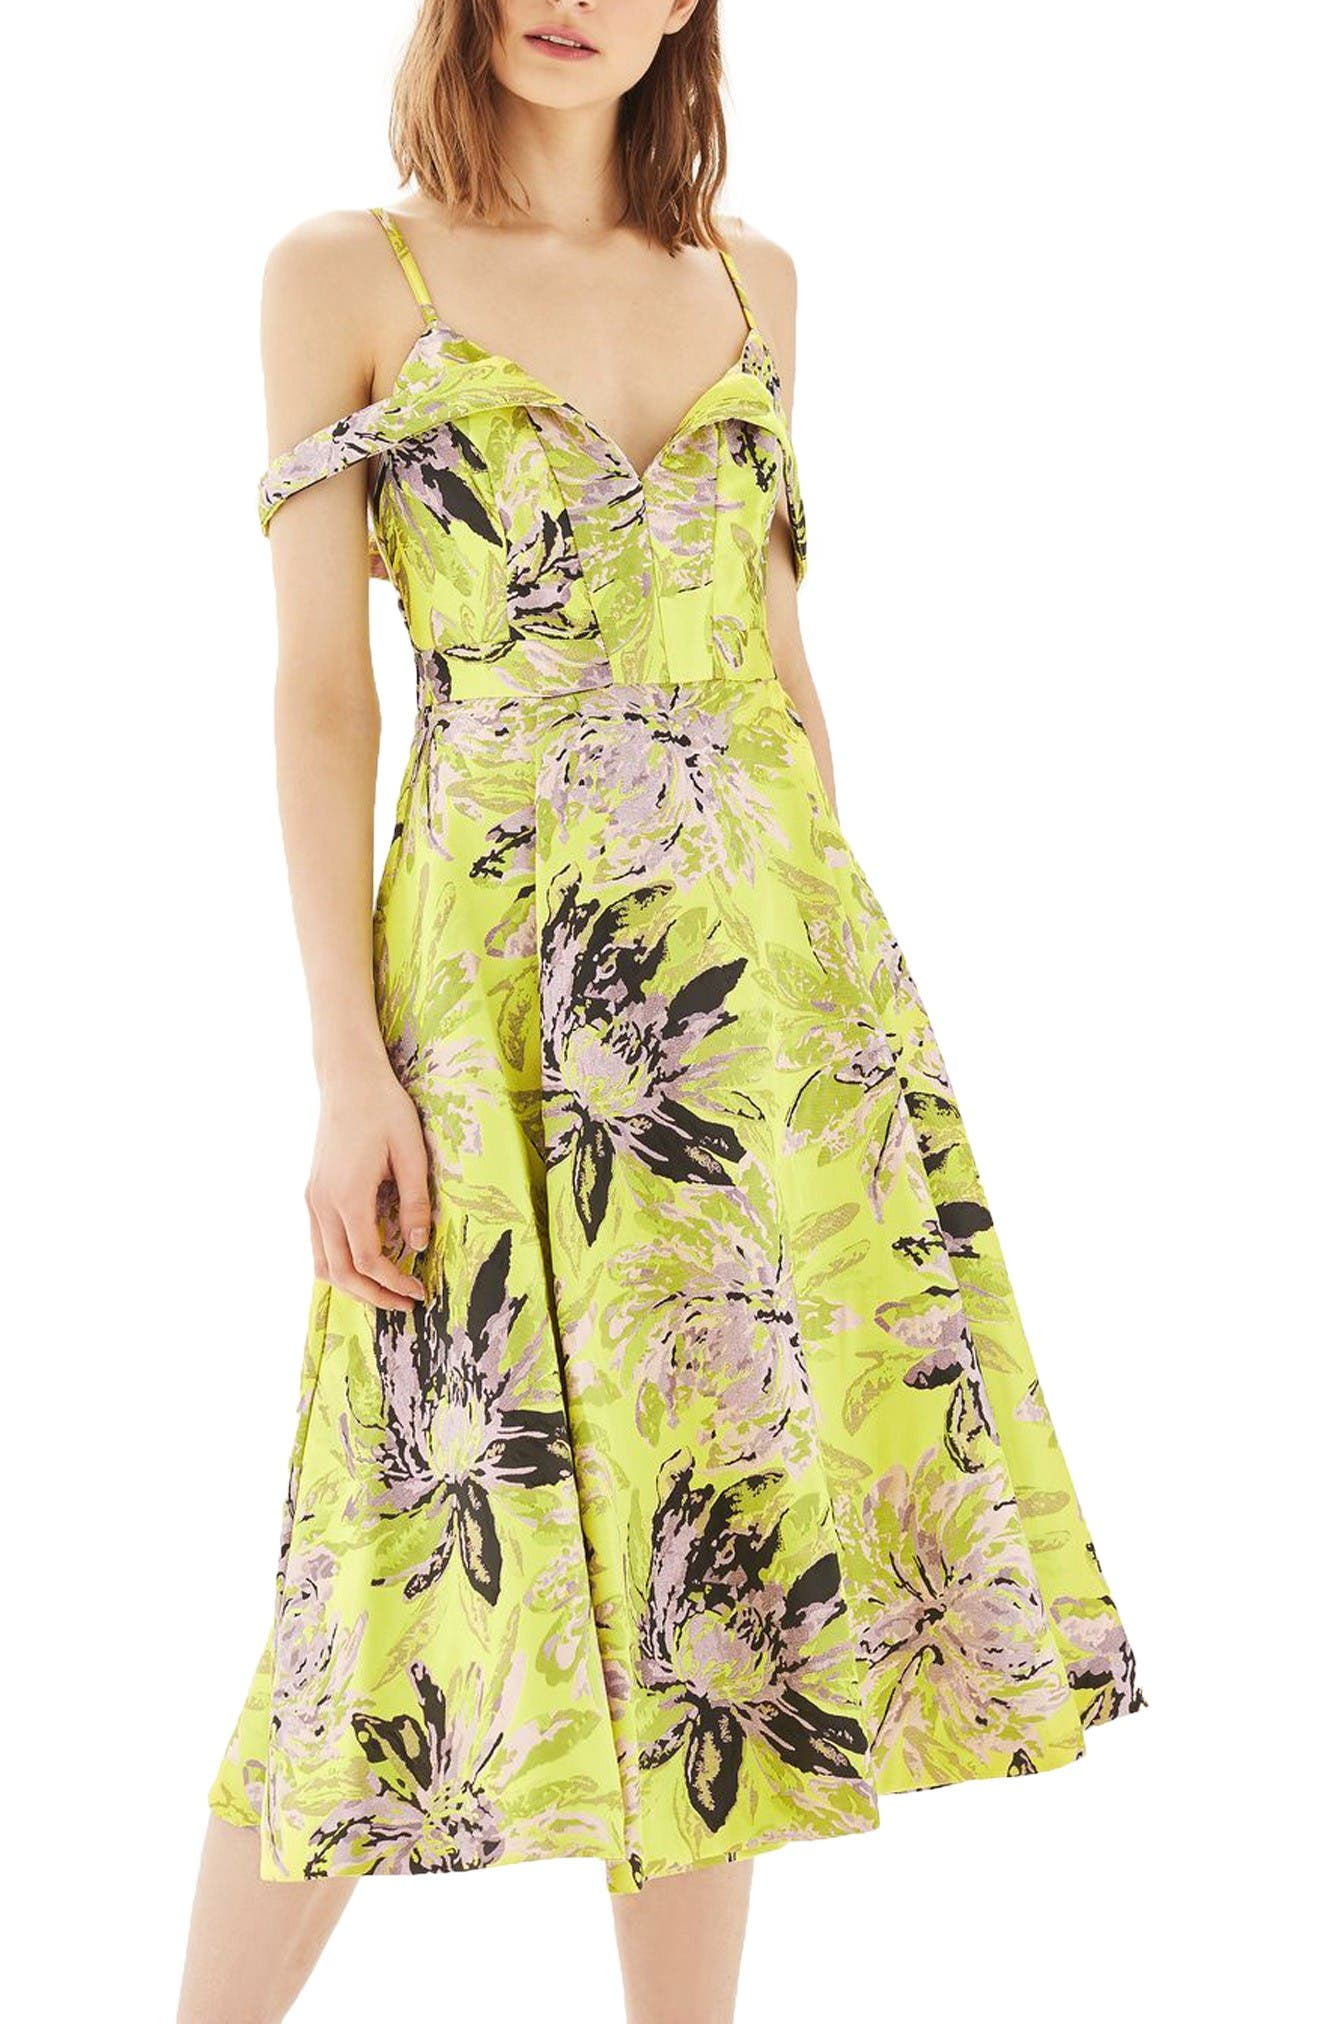 Alternate Image 1 Selected - Topshop Floral Jacquard Midi Dress